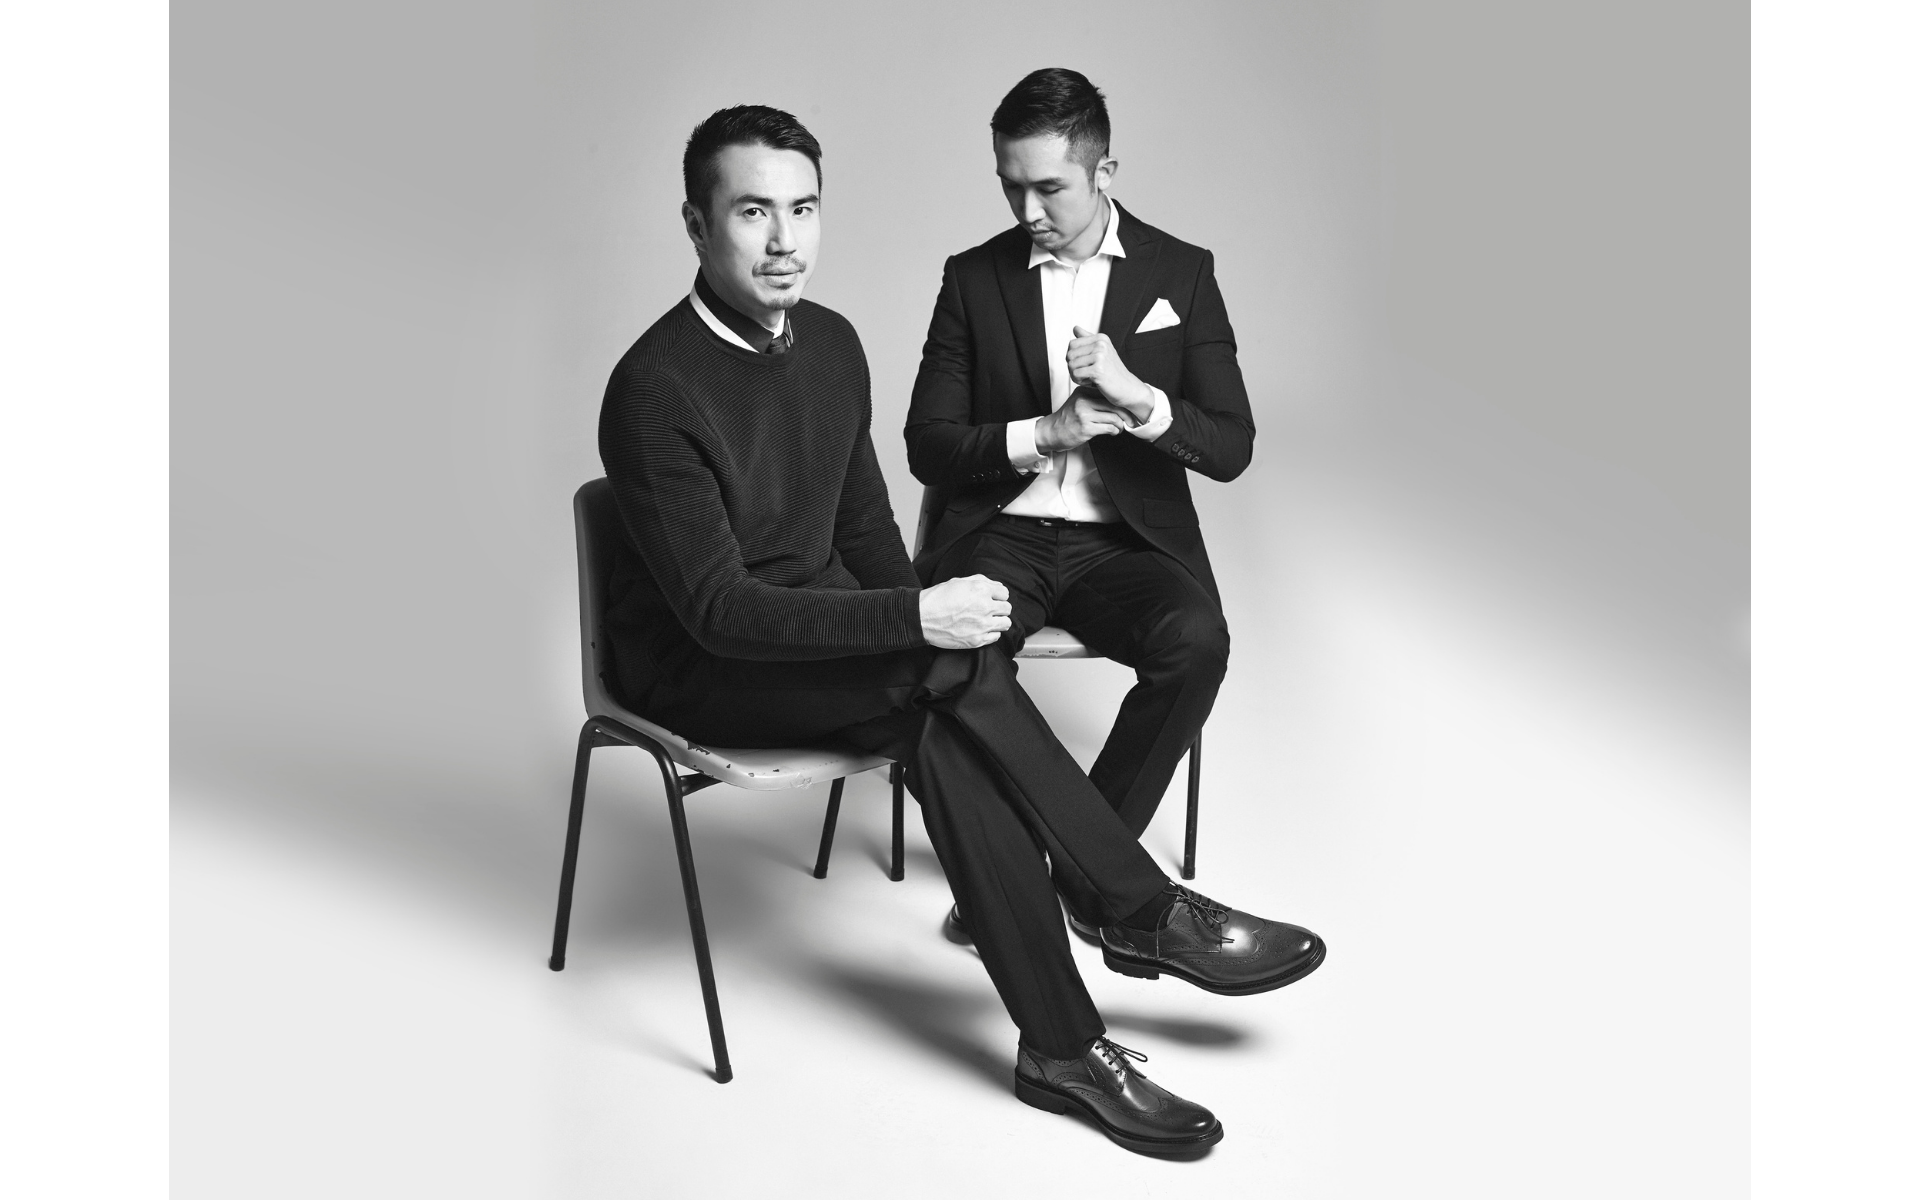 UnitedWood's Founders Voon Lai And Jonathan Cheng Make A Strong Fashion Statement